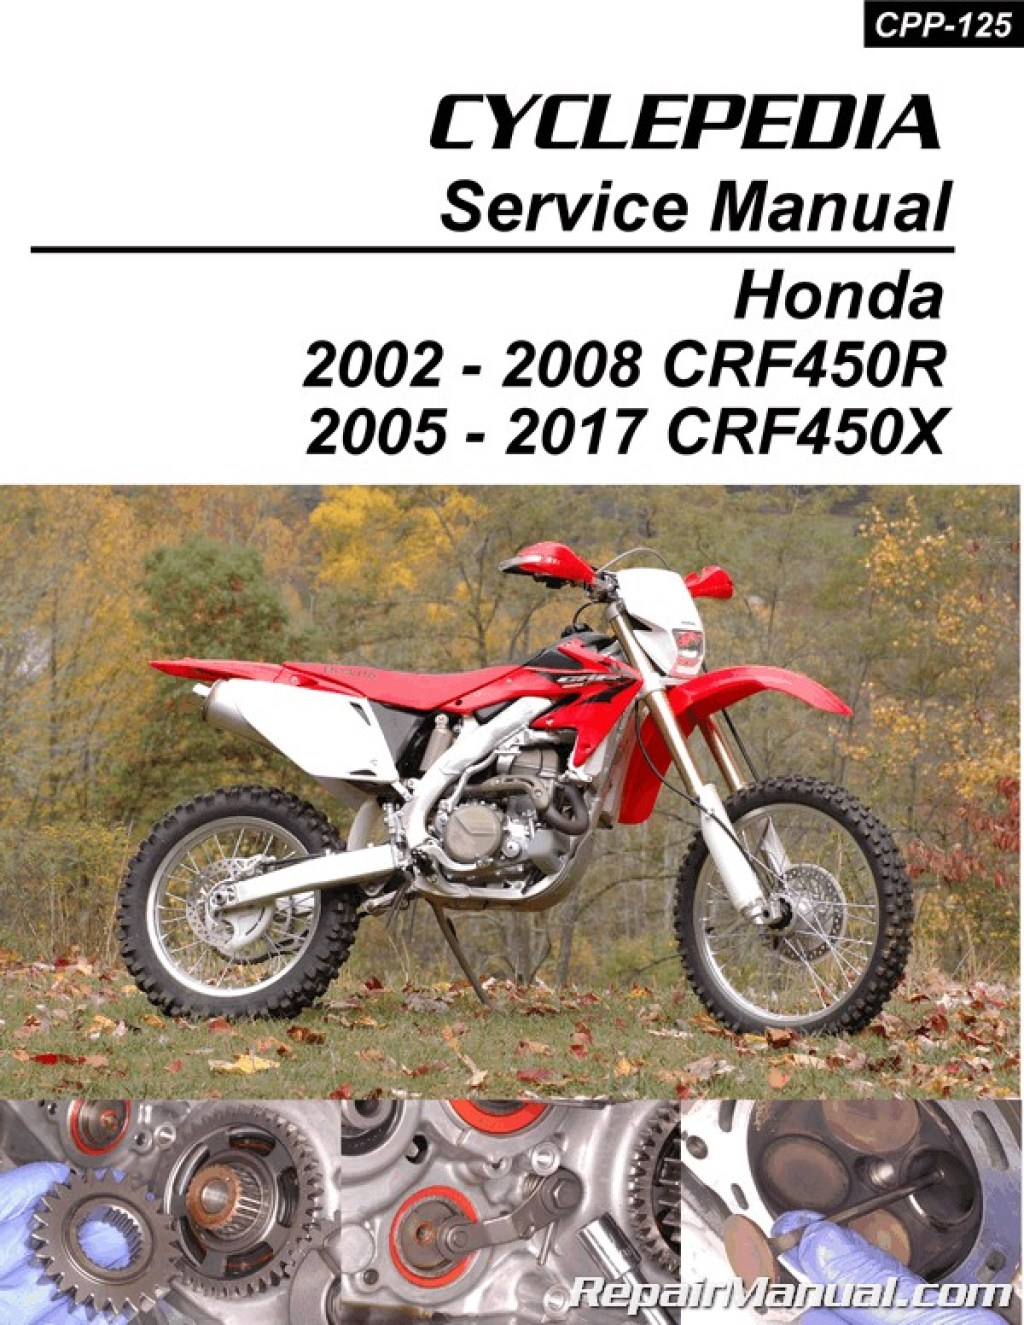 Free Online Honda Motorcycle Service Manuals Motorview Co